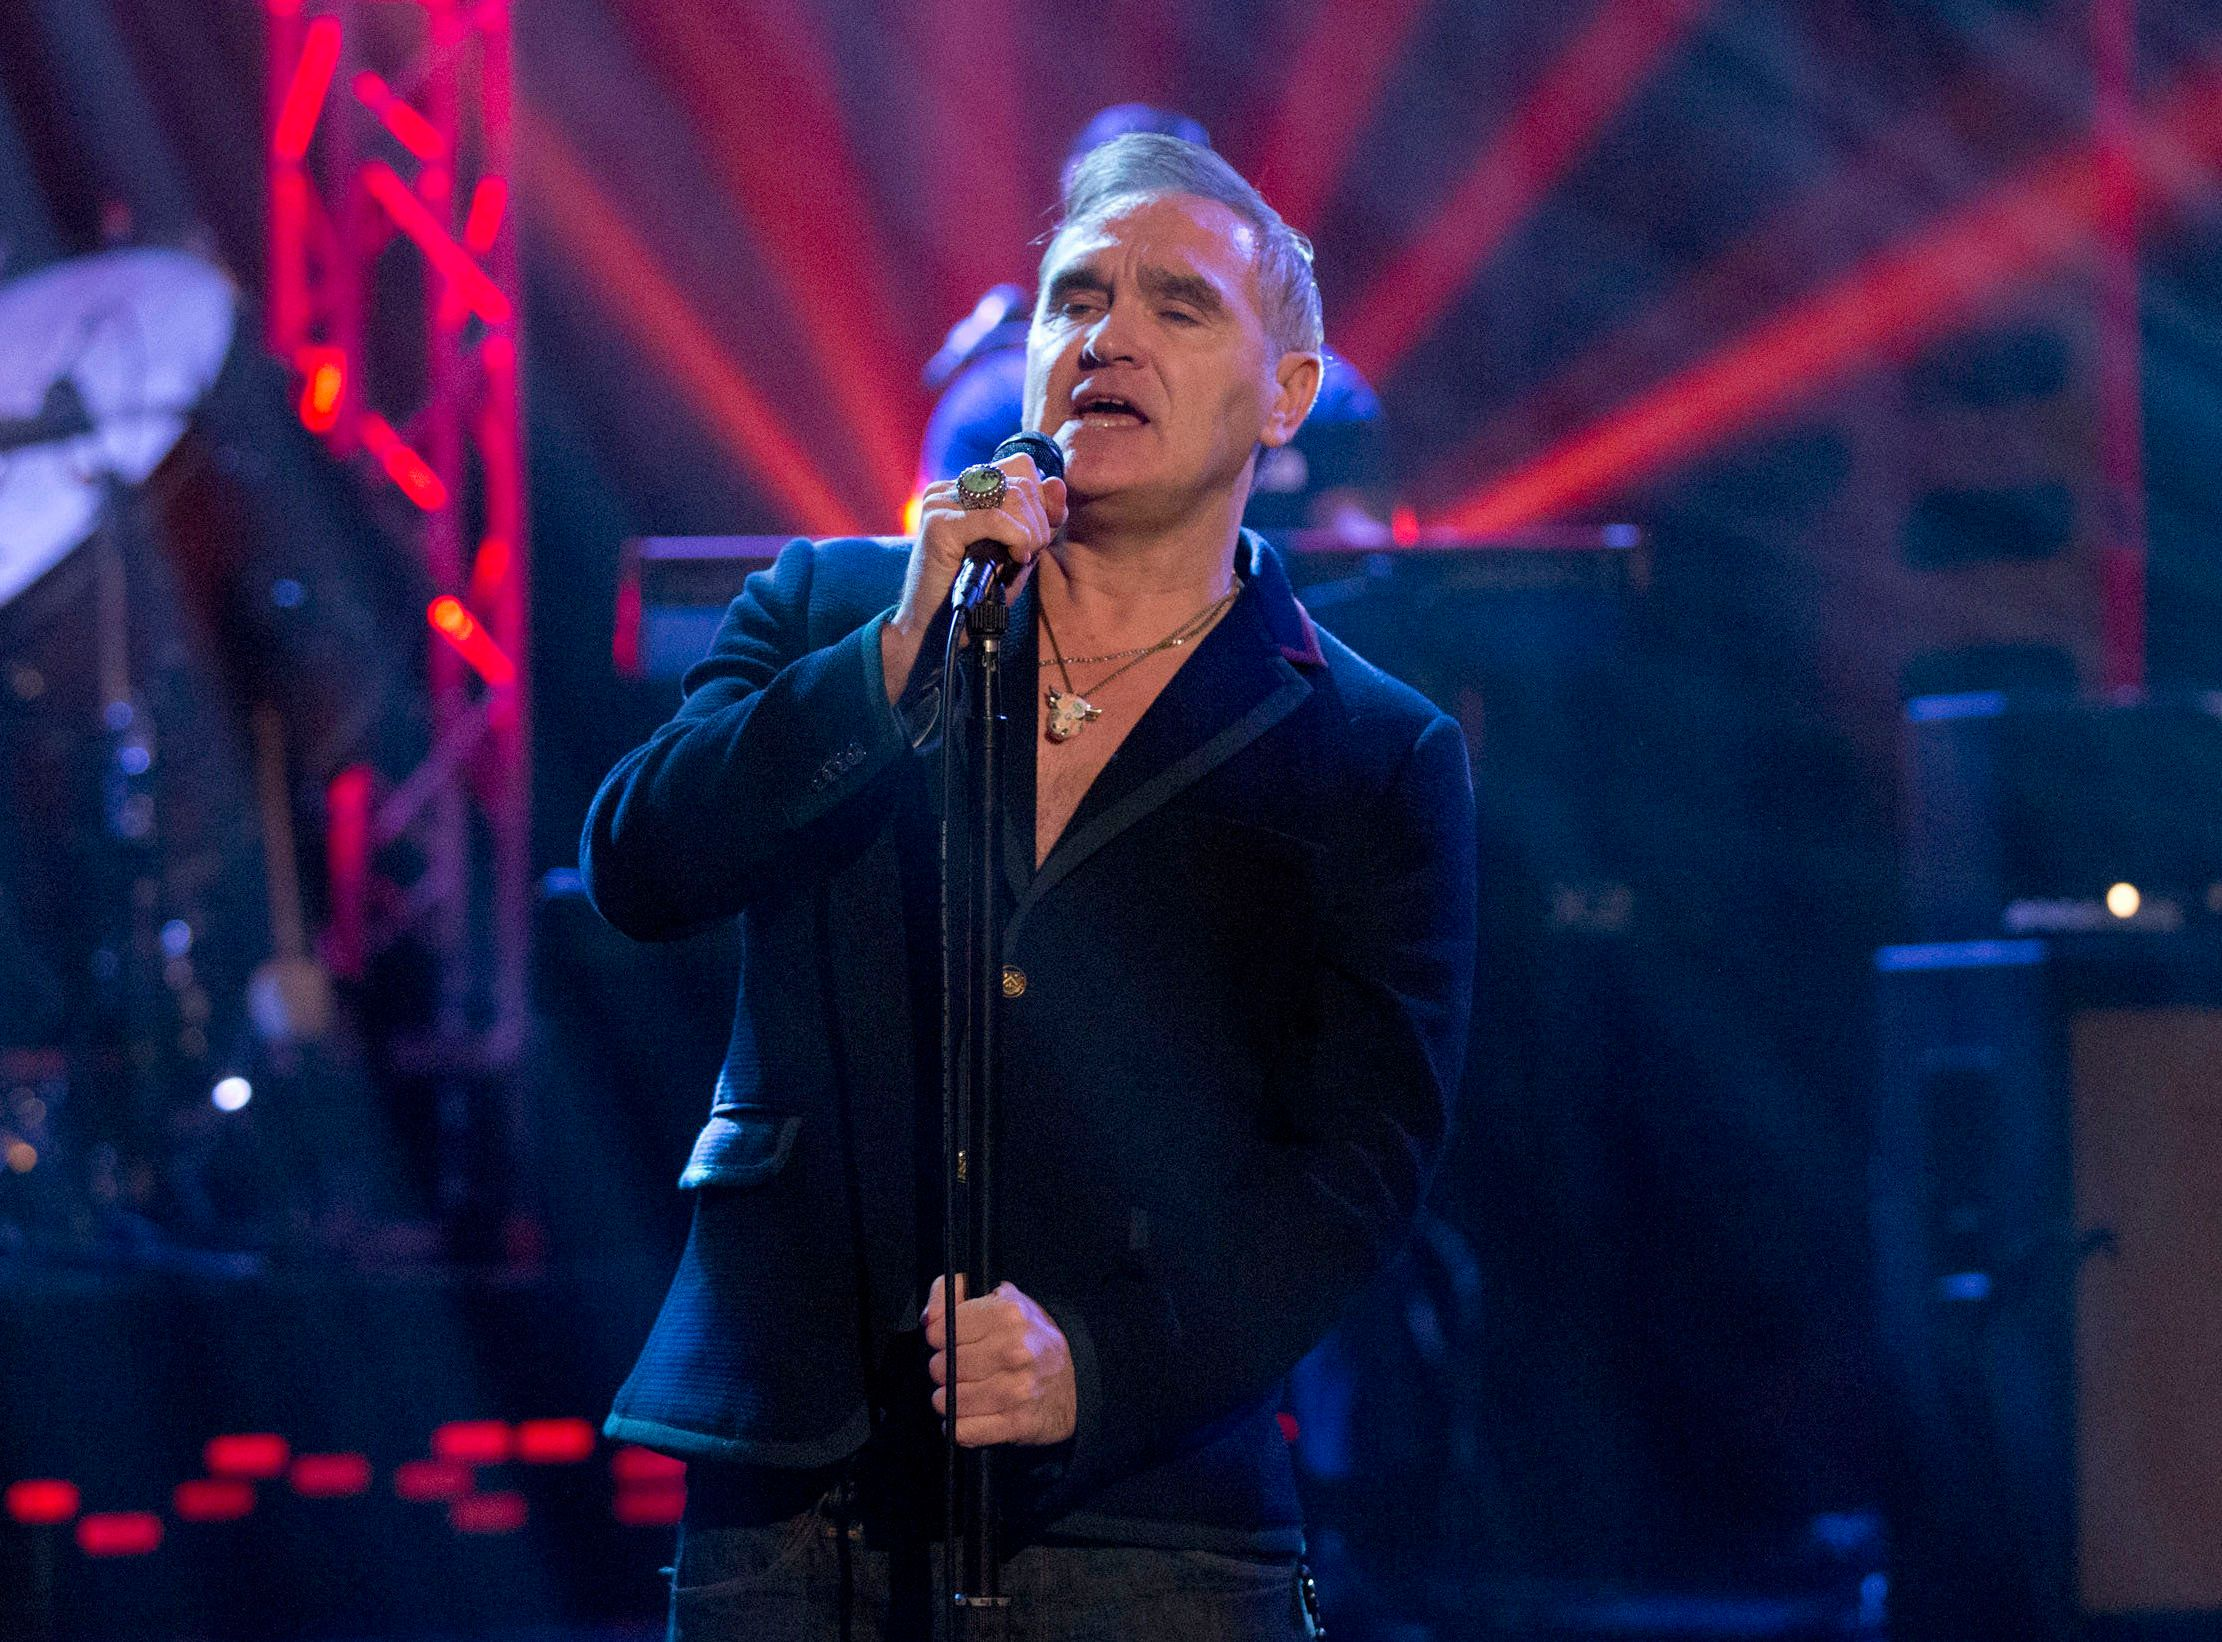 Morrissey Faces Criticism After Controversial Comments On Brexit, Sadiq Khan And Theresa